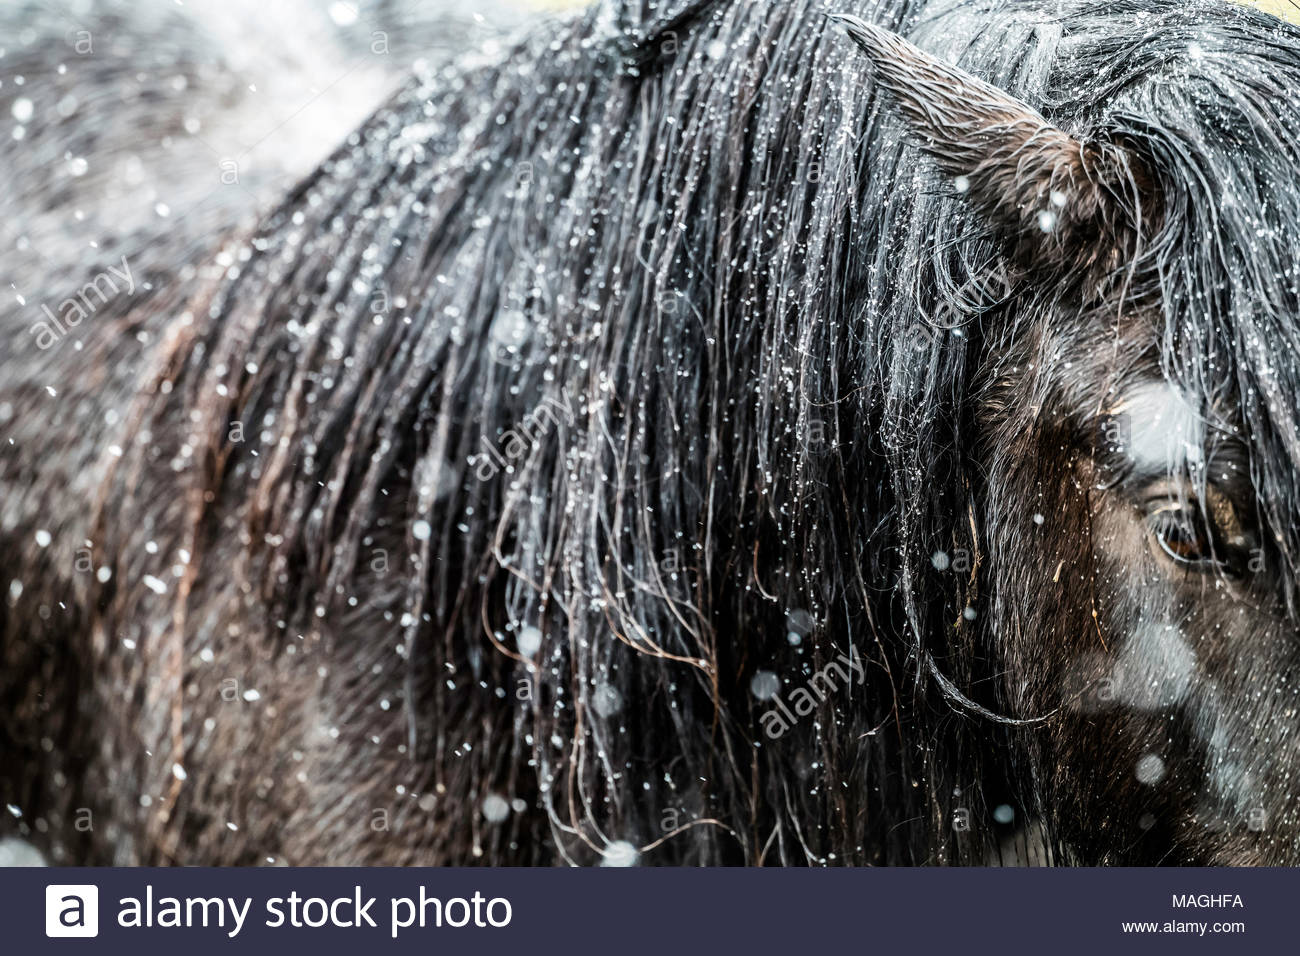 Hownam, Jedburgh, Scottish Borders, UK. 2nd April 2018. A Fell Pony in the snow on Towford Farm in the Kale Valley near the Anglo Scottish Border. Credit: Chris Strickland / Alamy Live News - Stock Image